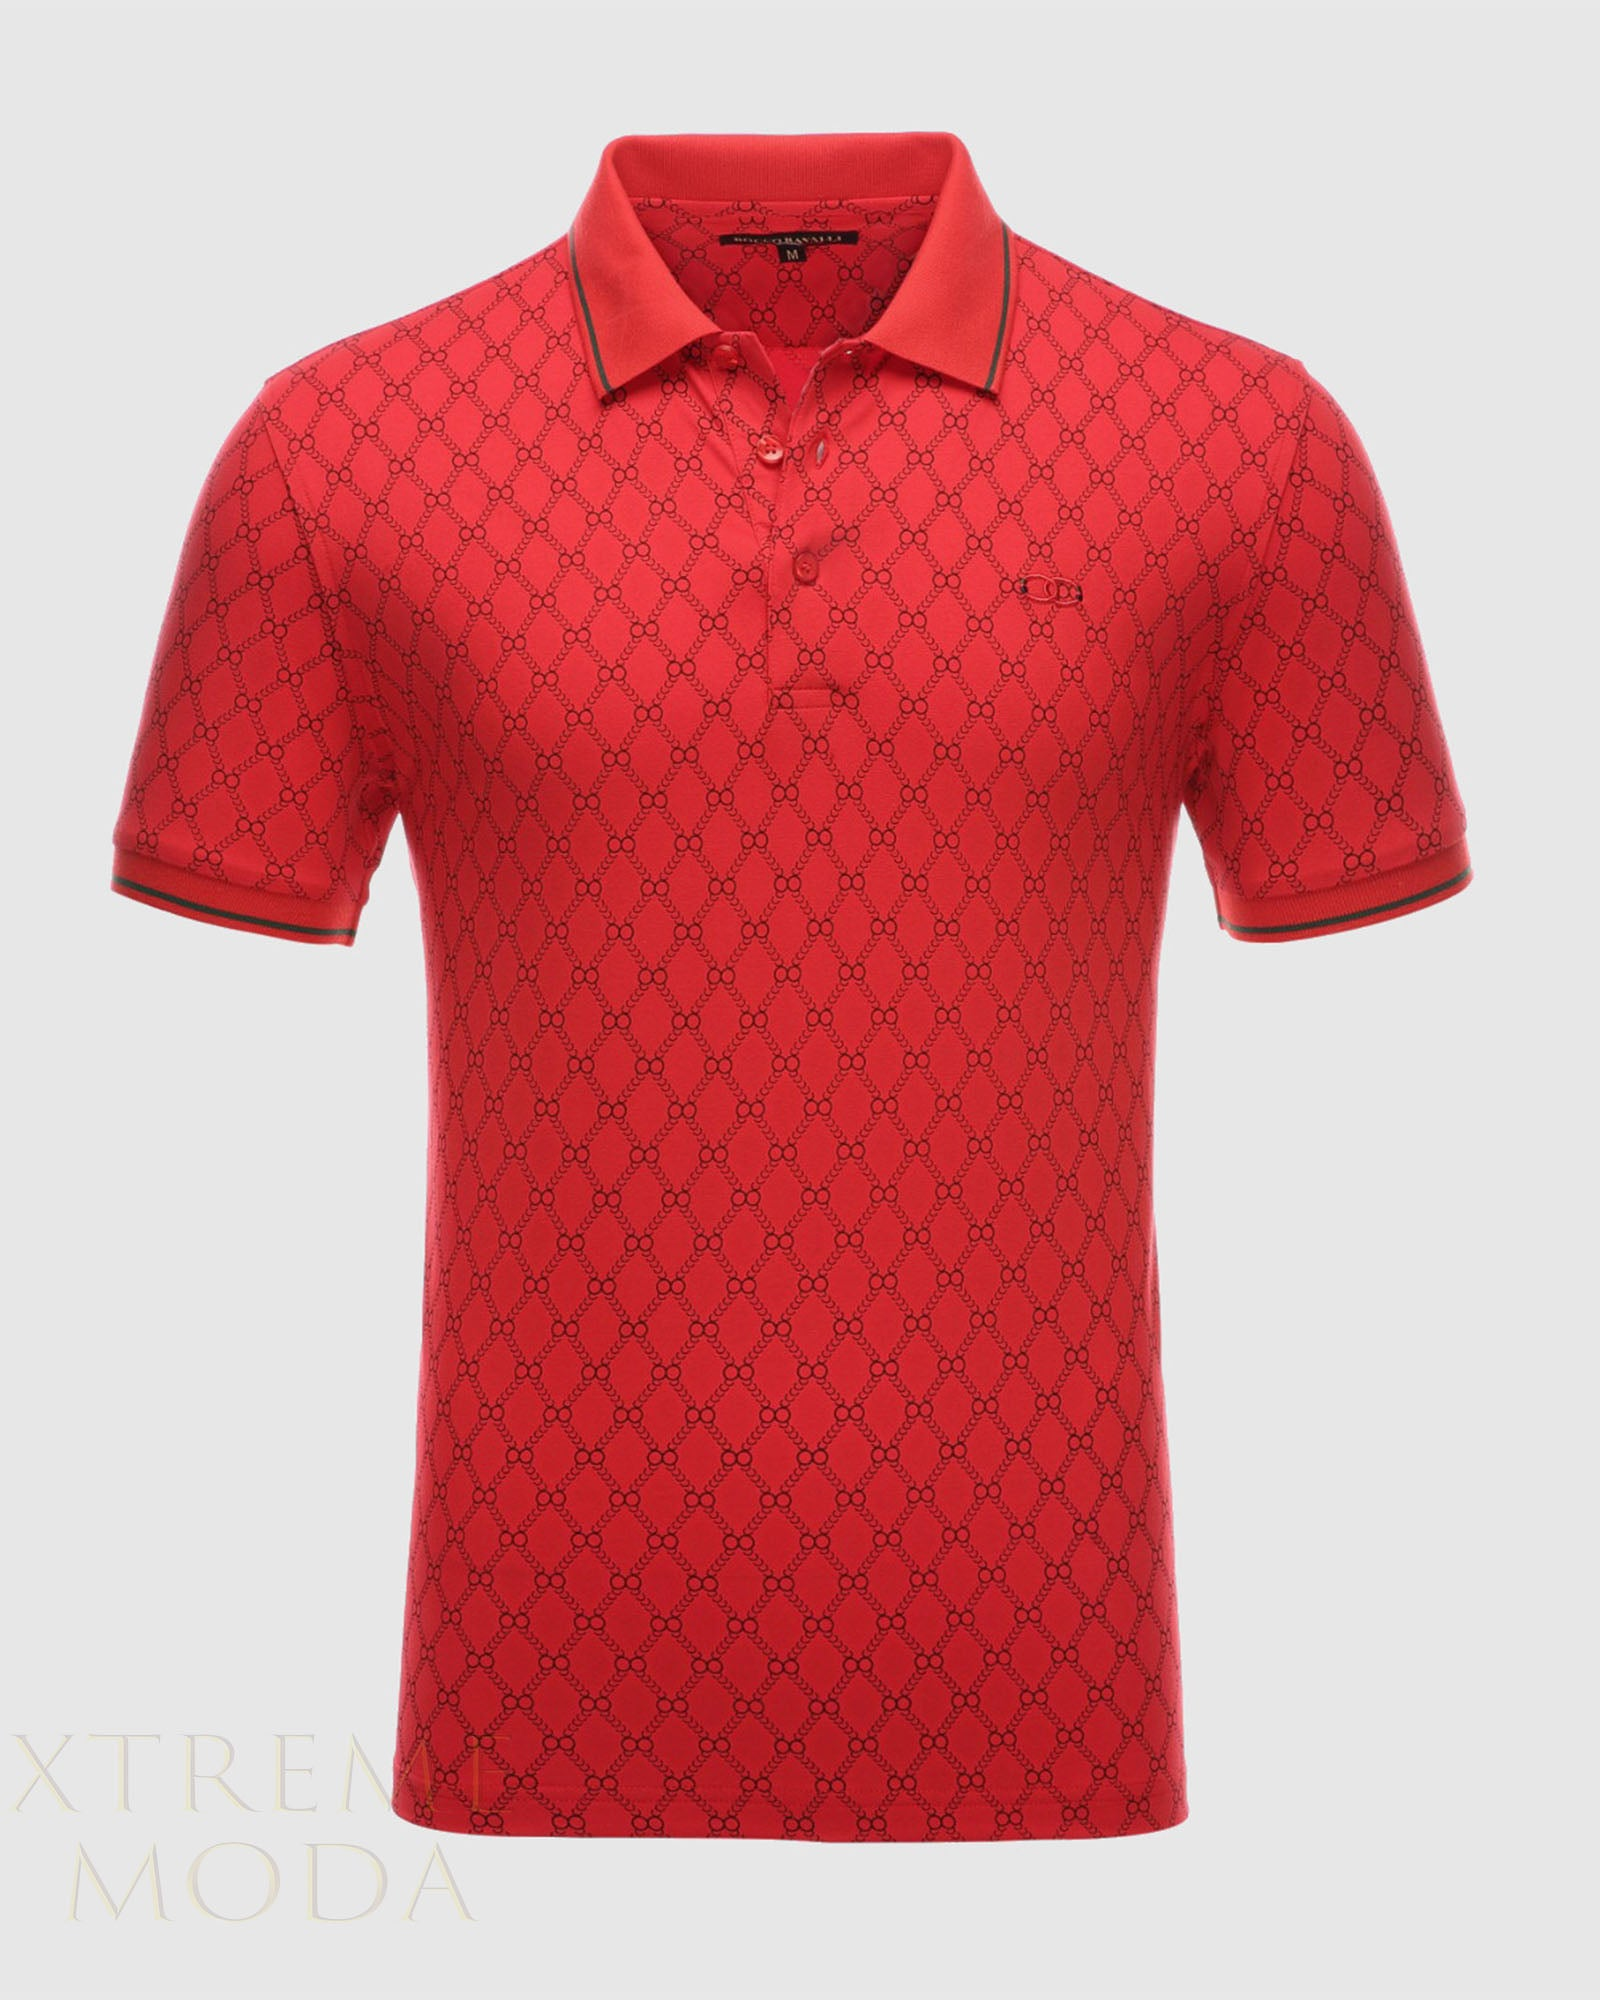 Modern fit Ravalli  polo shirt  RP-3004 Red